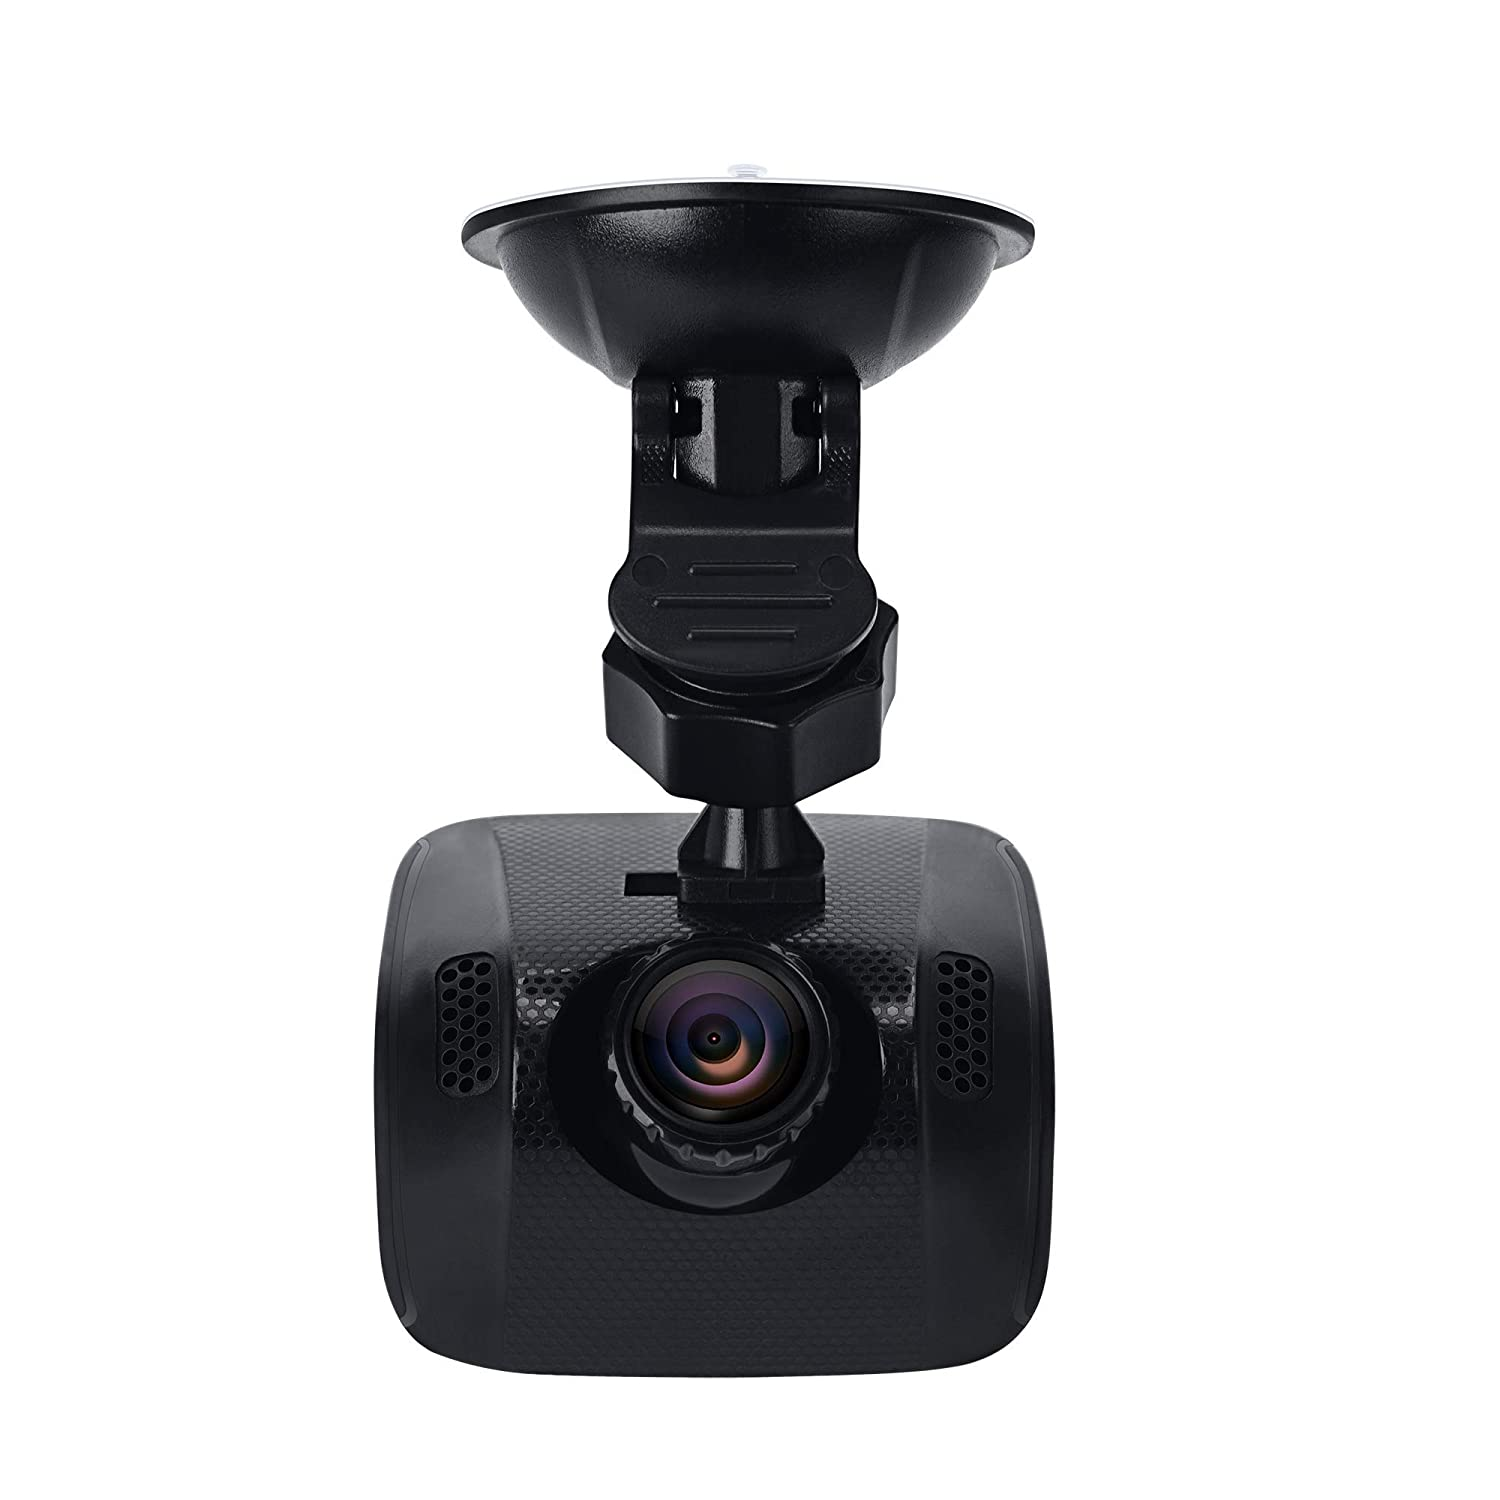 Loop Record with 16GB Micro SD Card Built-in G-Sensor Parking Monitor GEKO S200 Starlit HD 1296P Sony Starvis Sensor Dash Cam Great Night Vision Dashboard Camera